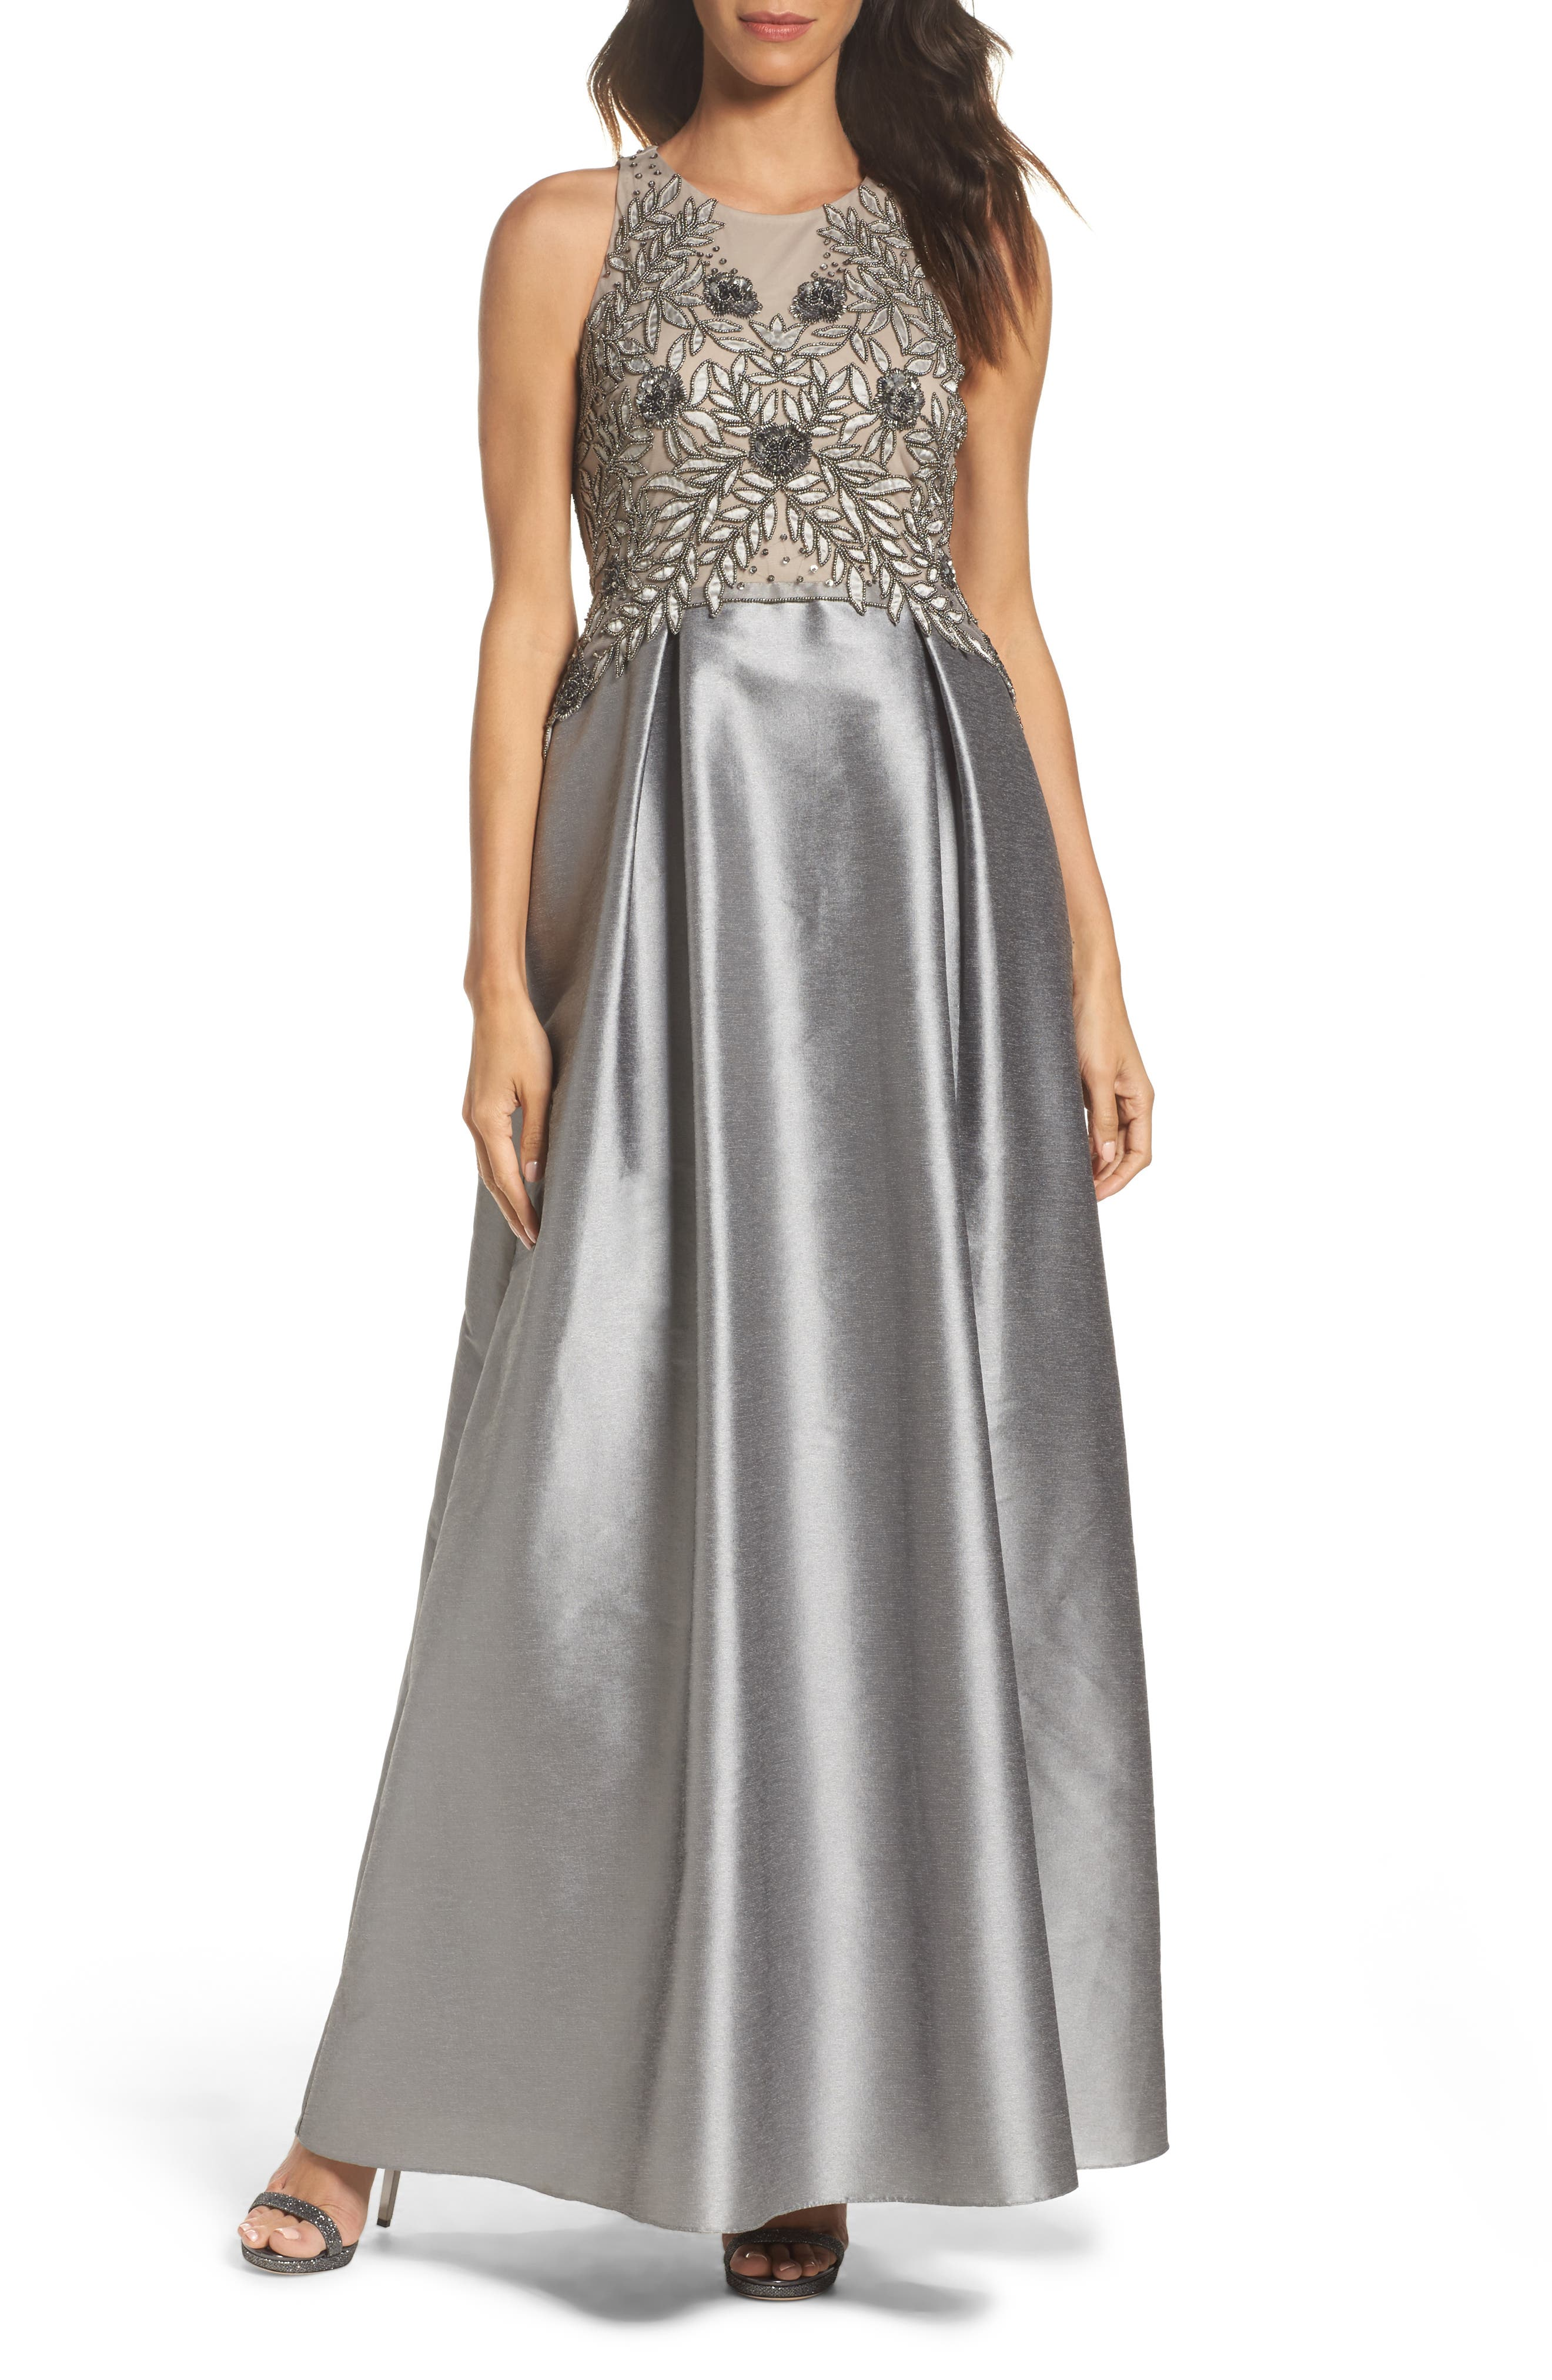 Adrianna Papell Embellished Mesh & Faille Ballgown